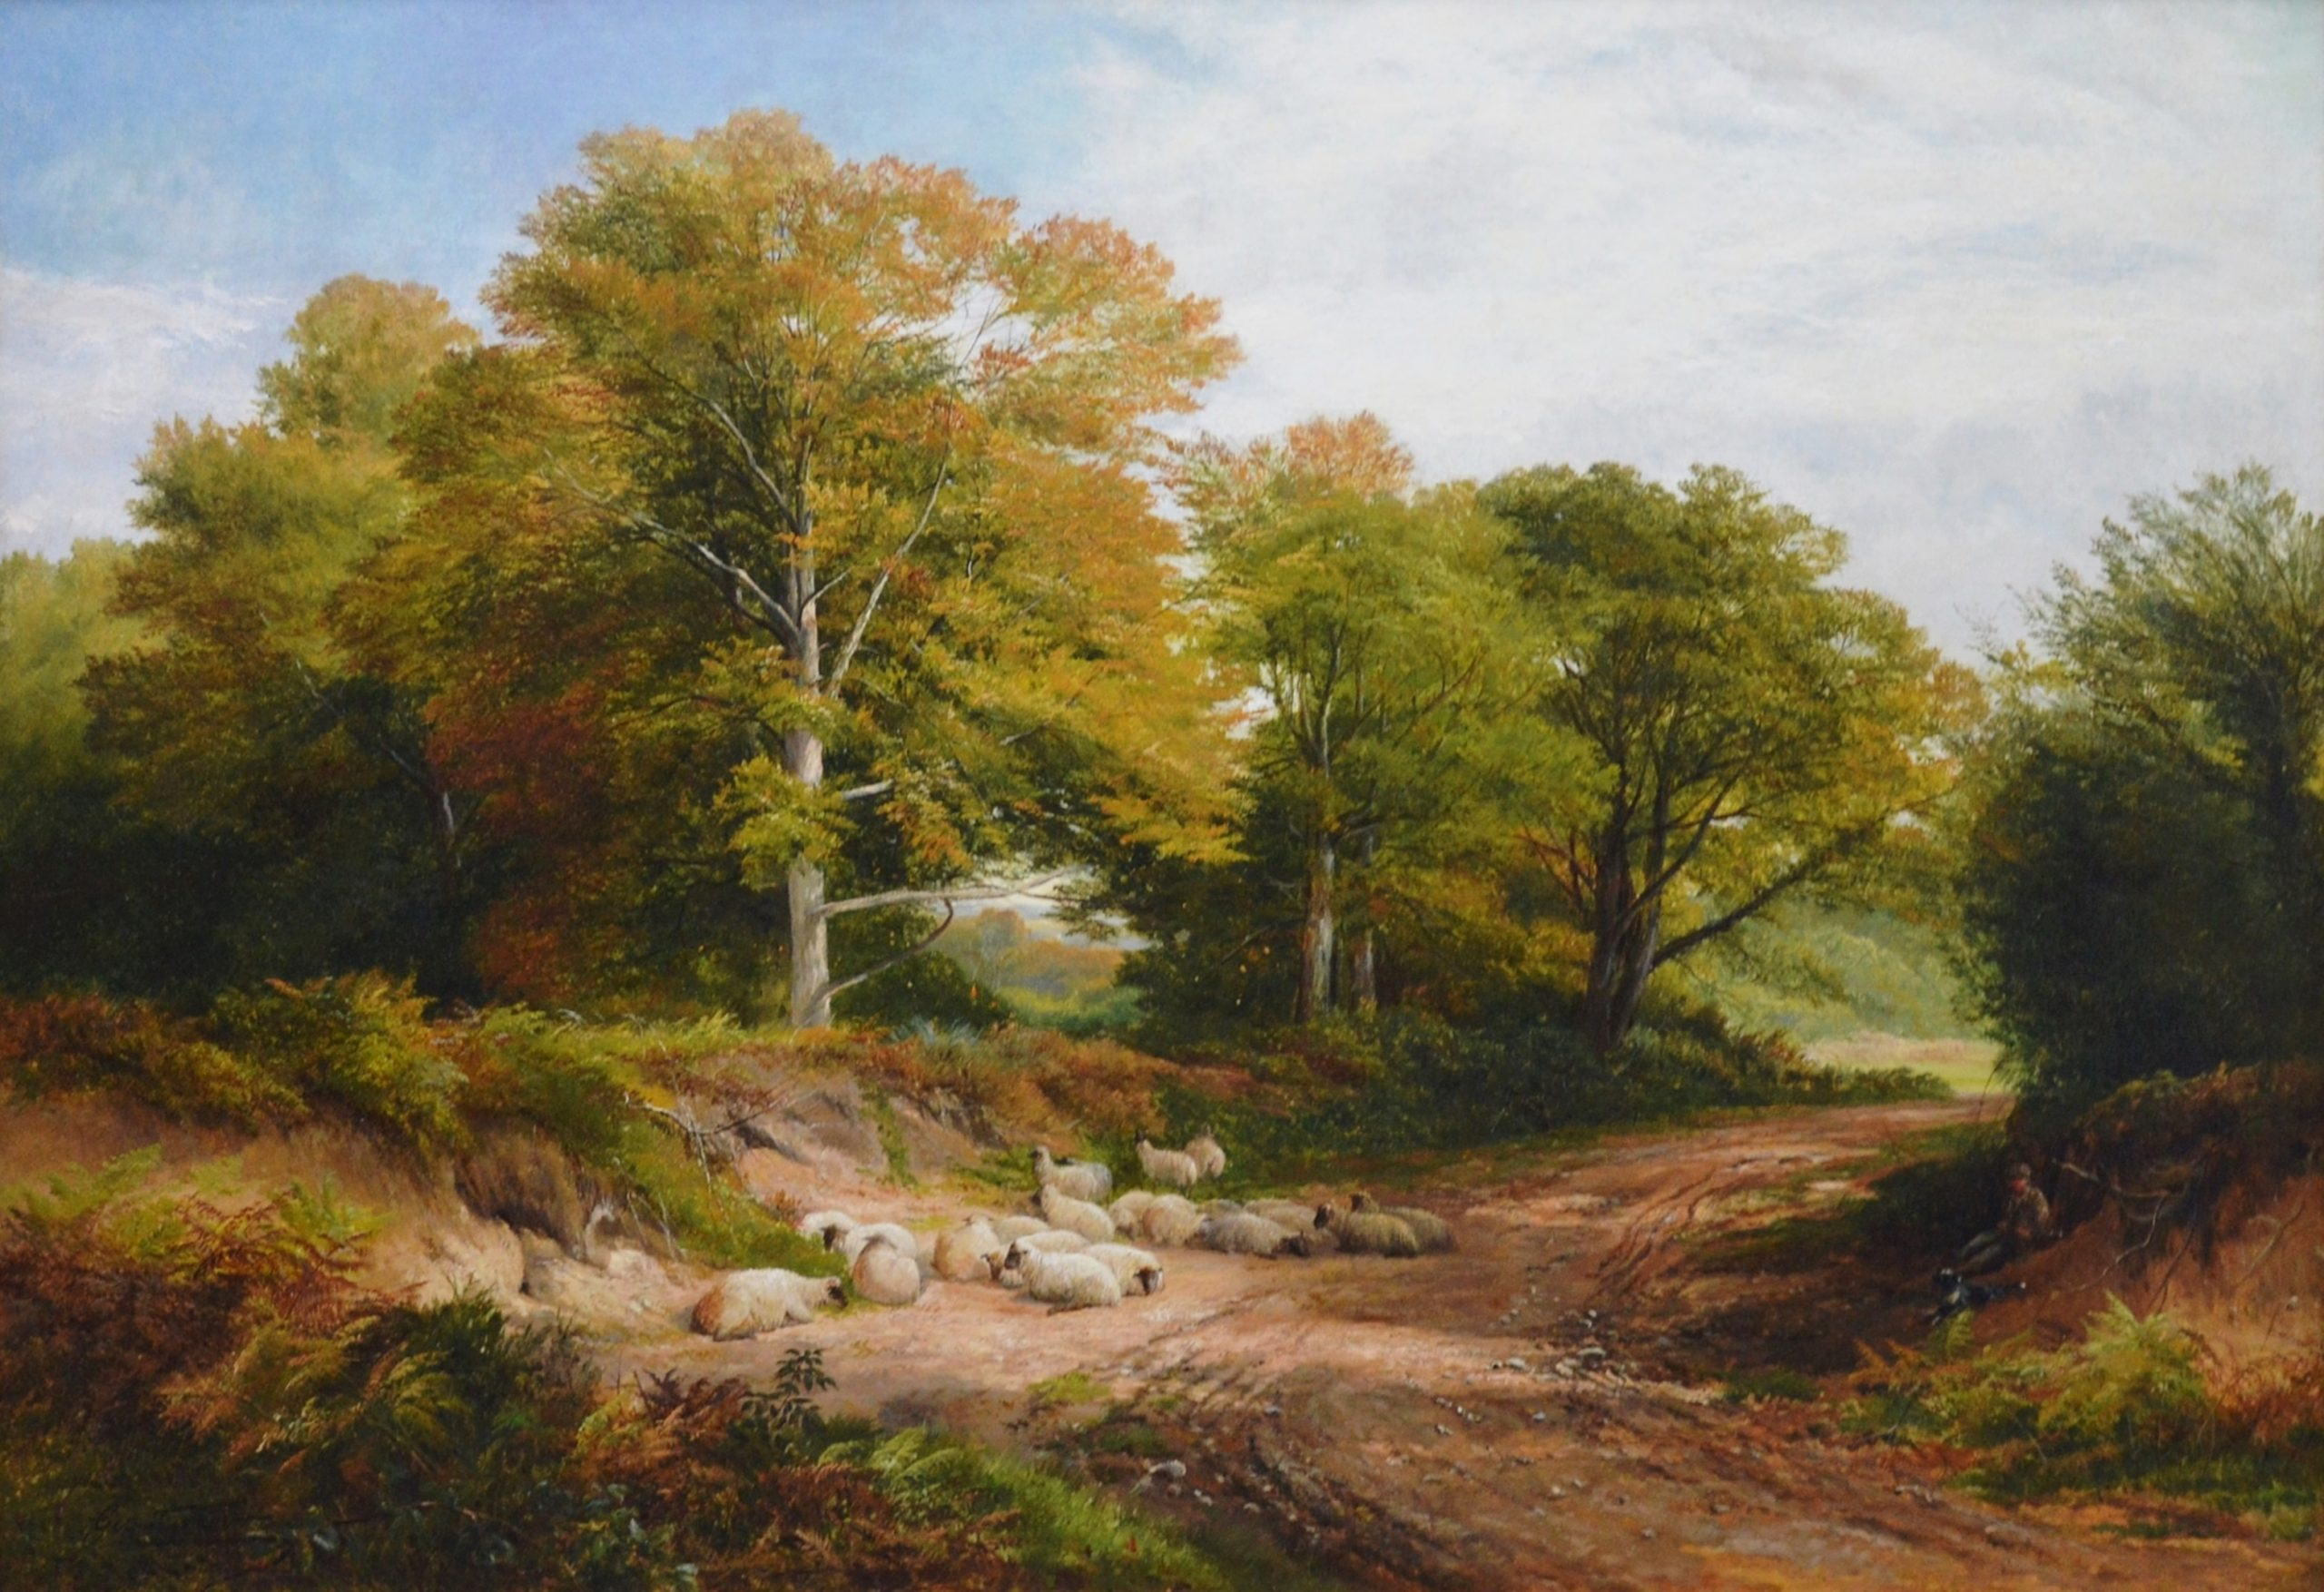 Froggatt, Derbyshire 1873 - 19th Century English Summer Landscape Oil Painting Image